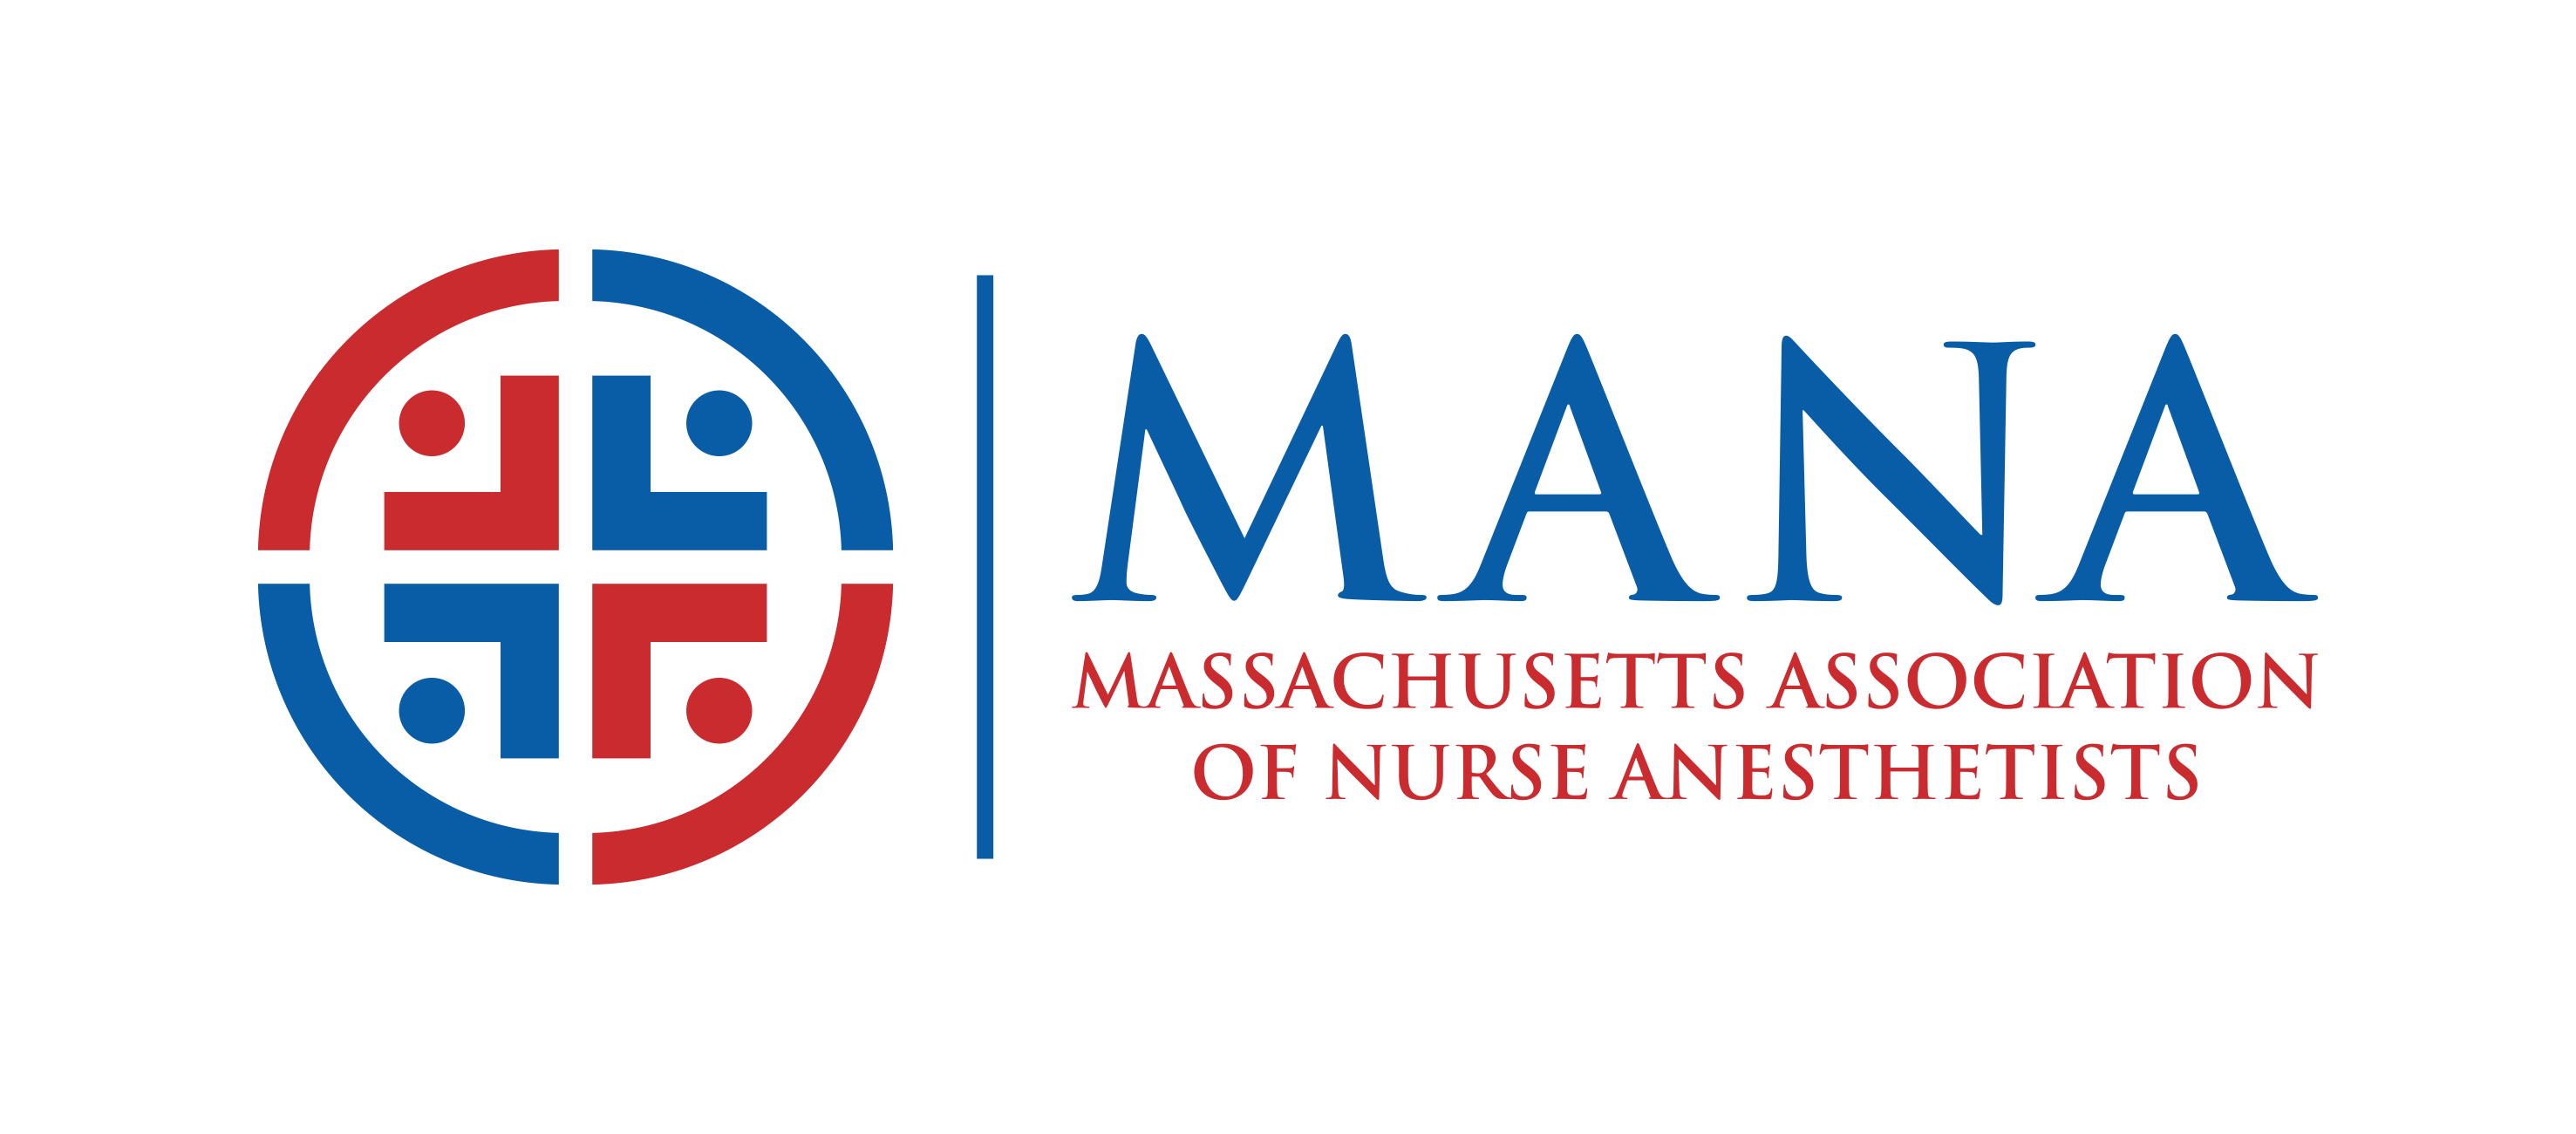 Massachusetts Association of Nurse Anesthetists